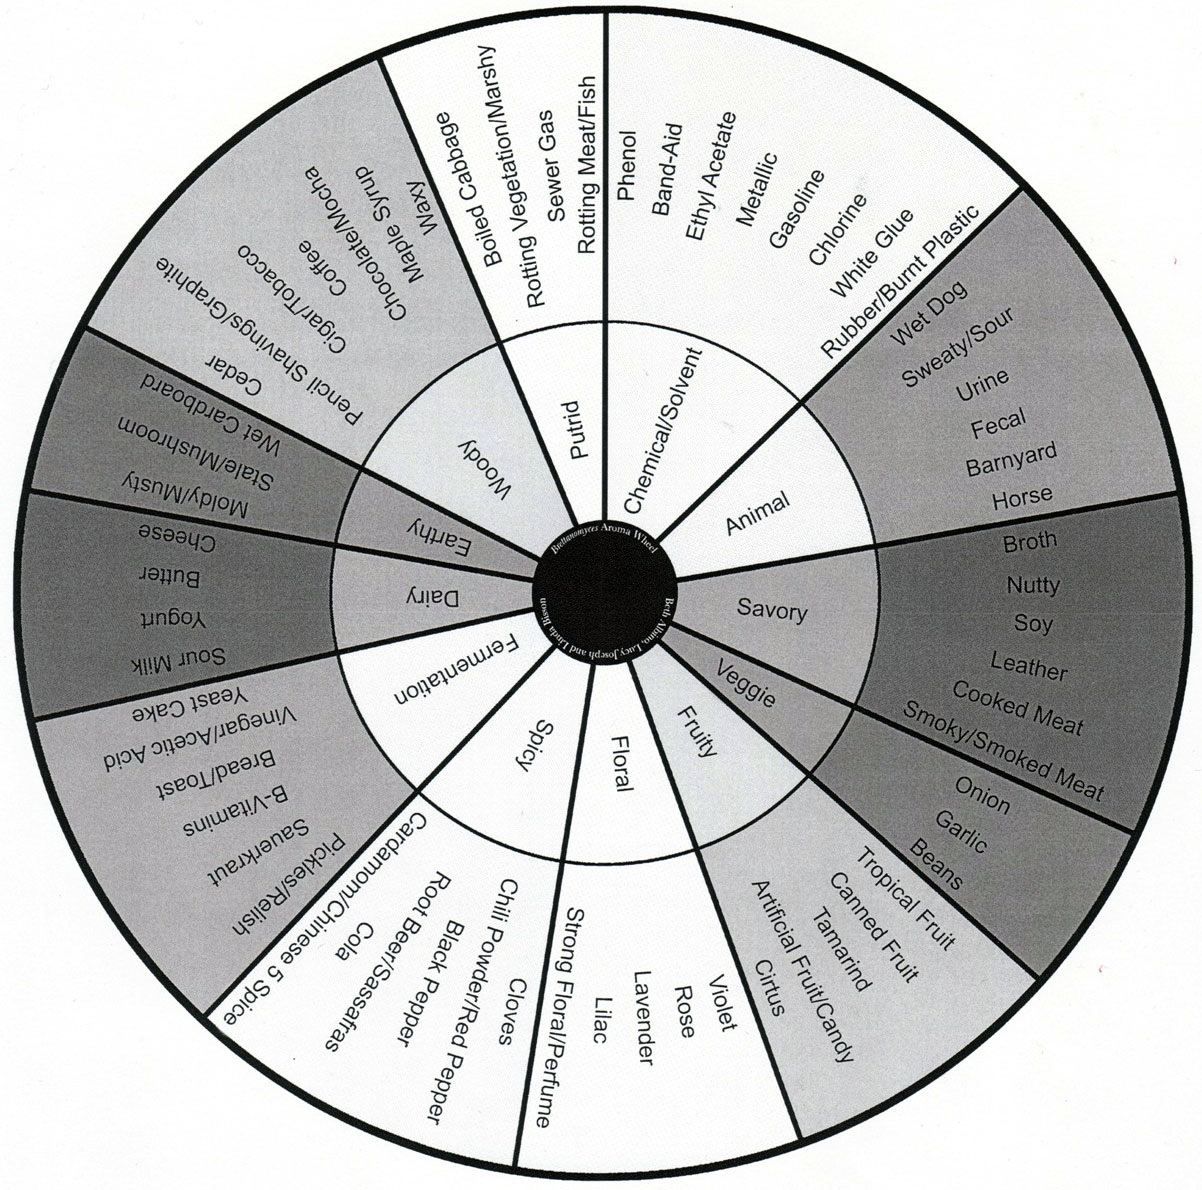 Brettanomyces Flavor Wheel